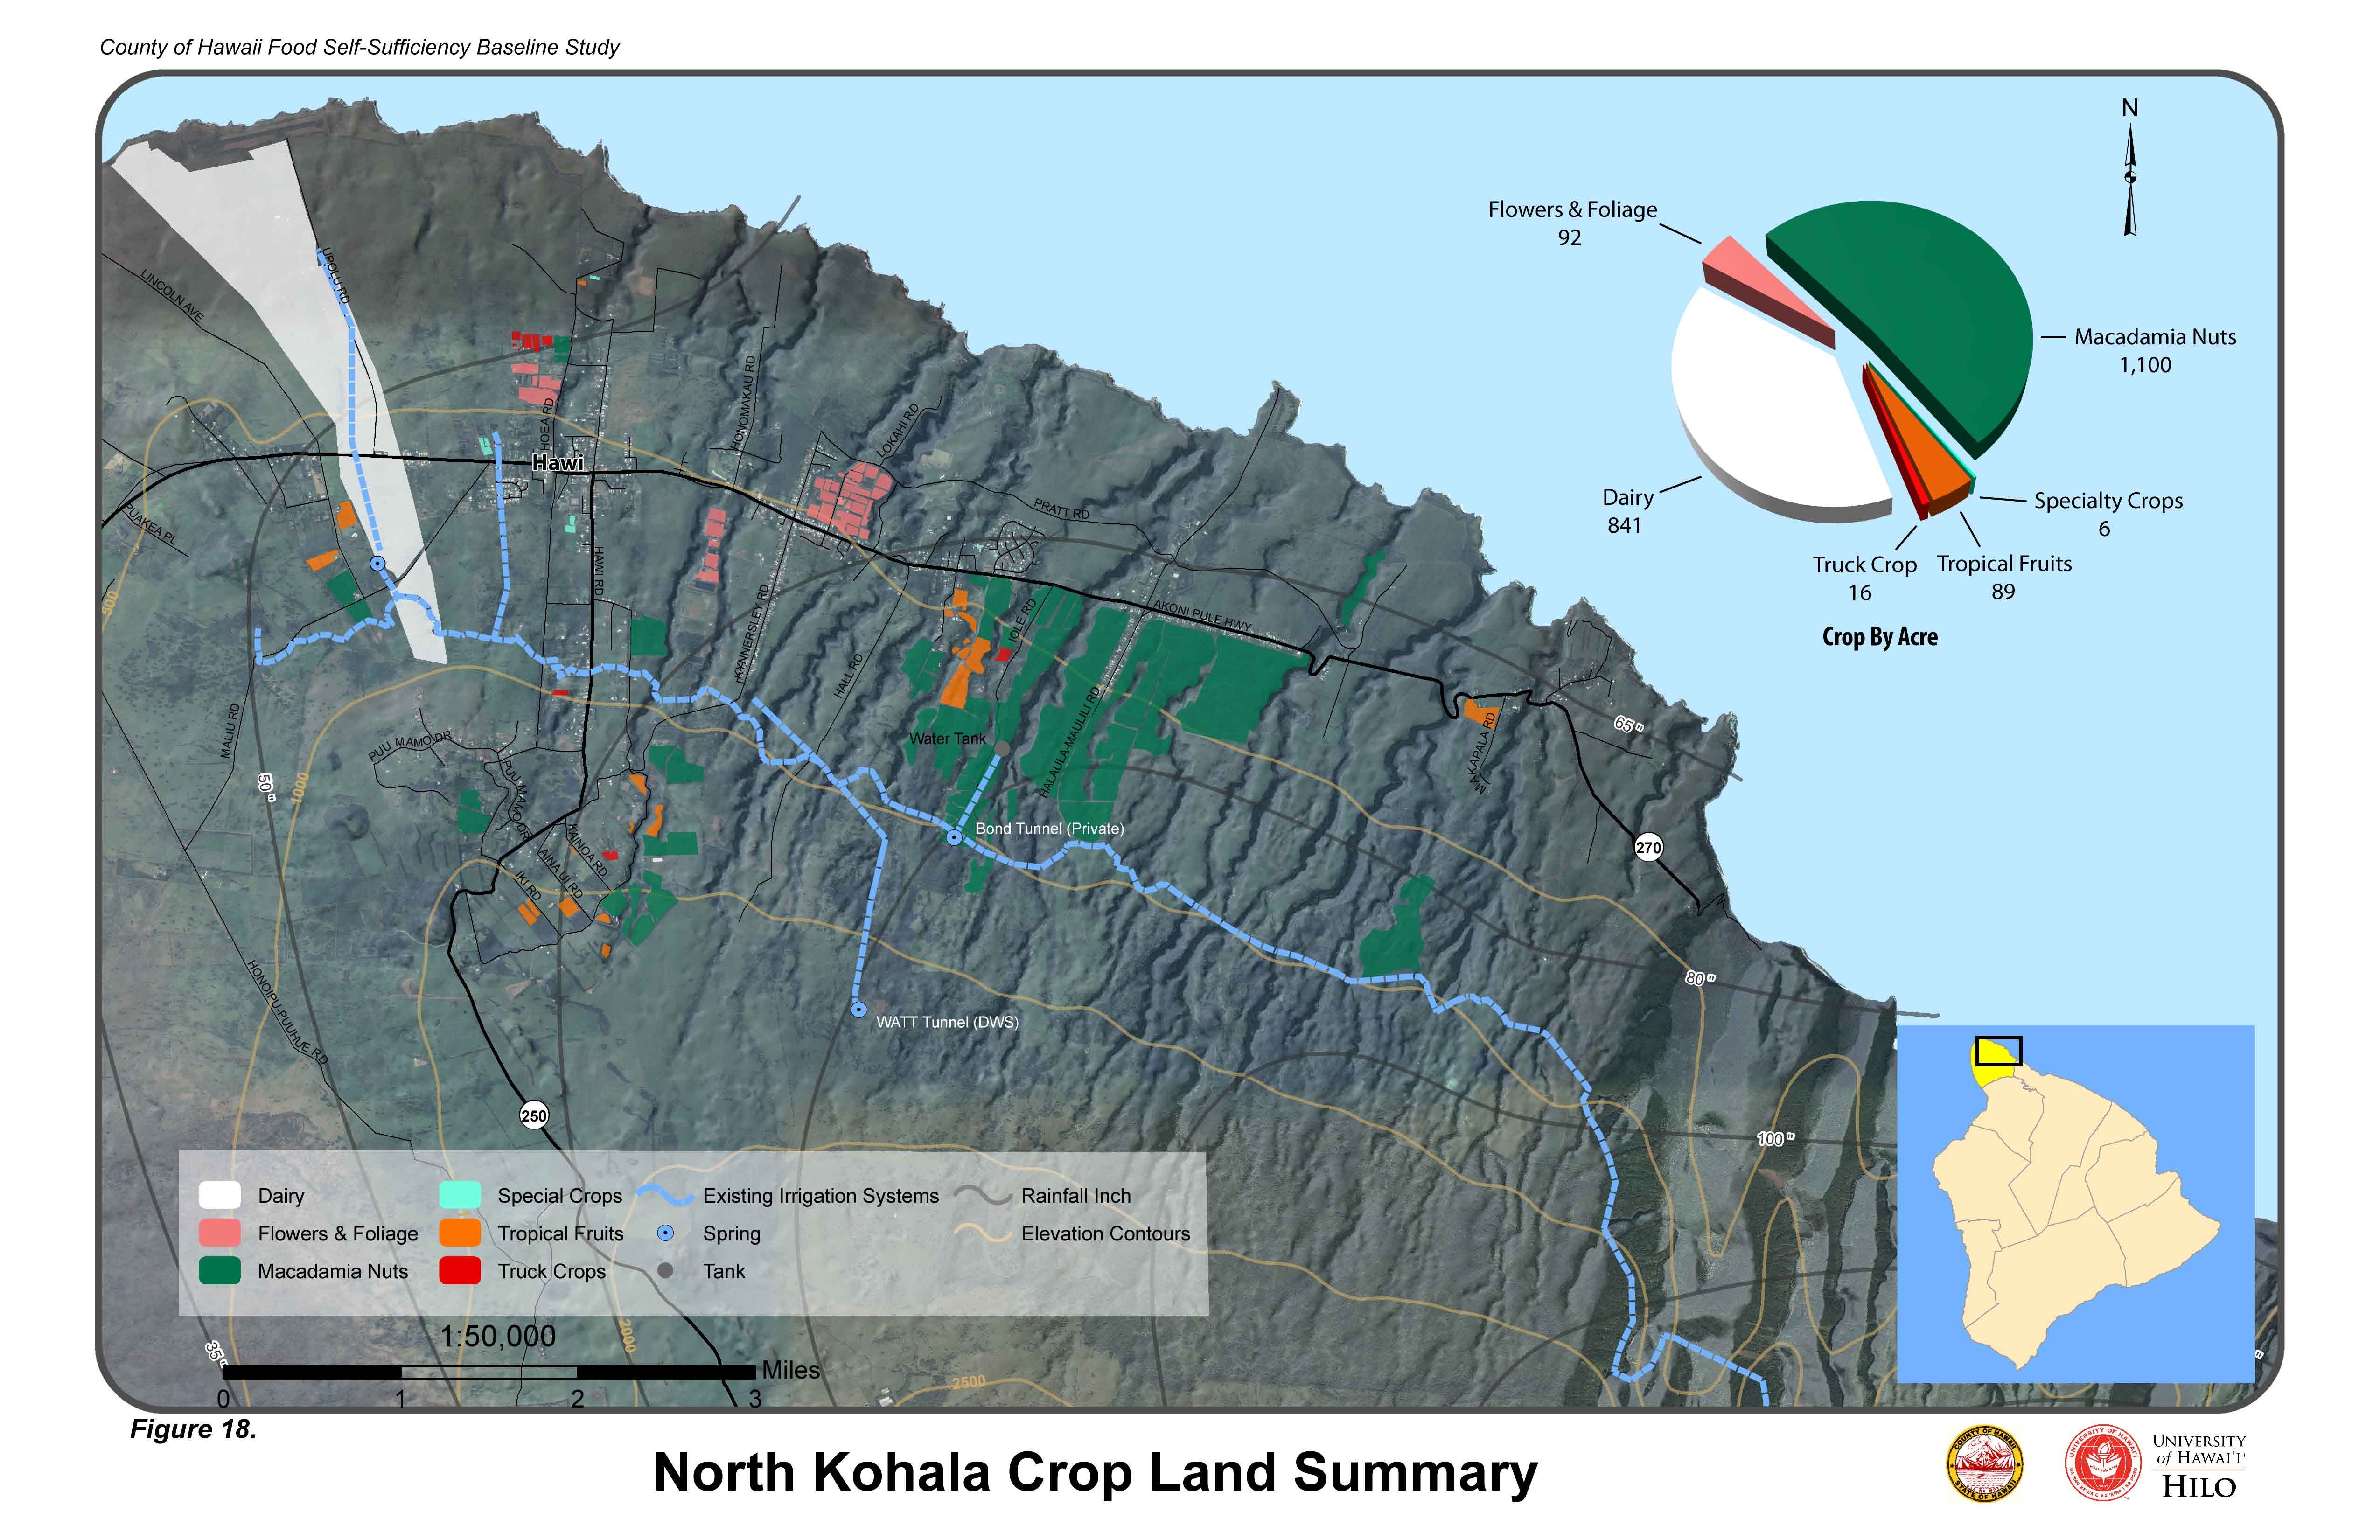 Detailed map of North Hawaii Island, with color coded sections designating flowers, foliage, mac nuts, dairy, crops, fruits, specialty crops.